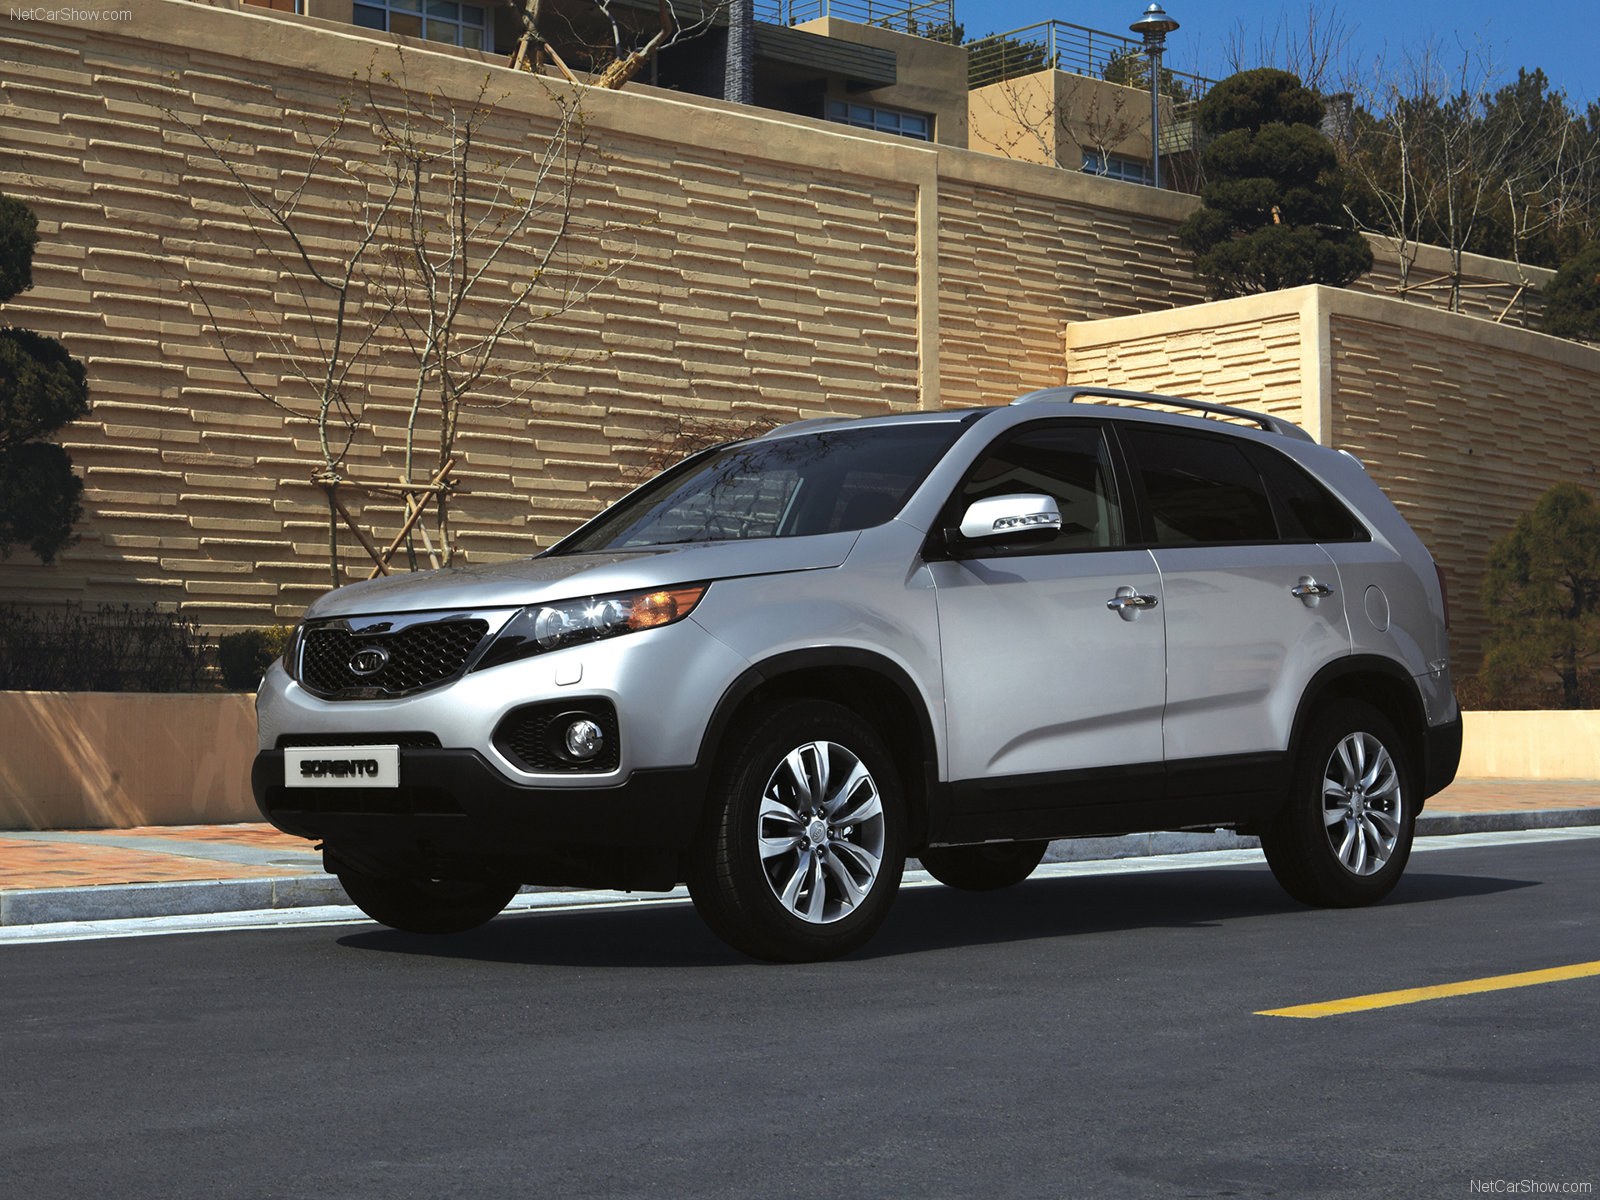 2010 kia sorento photogallery wallpapers. Black Bedroom Furniture Sets. Home Design Ideas